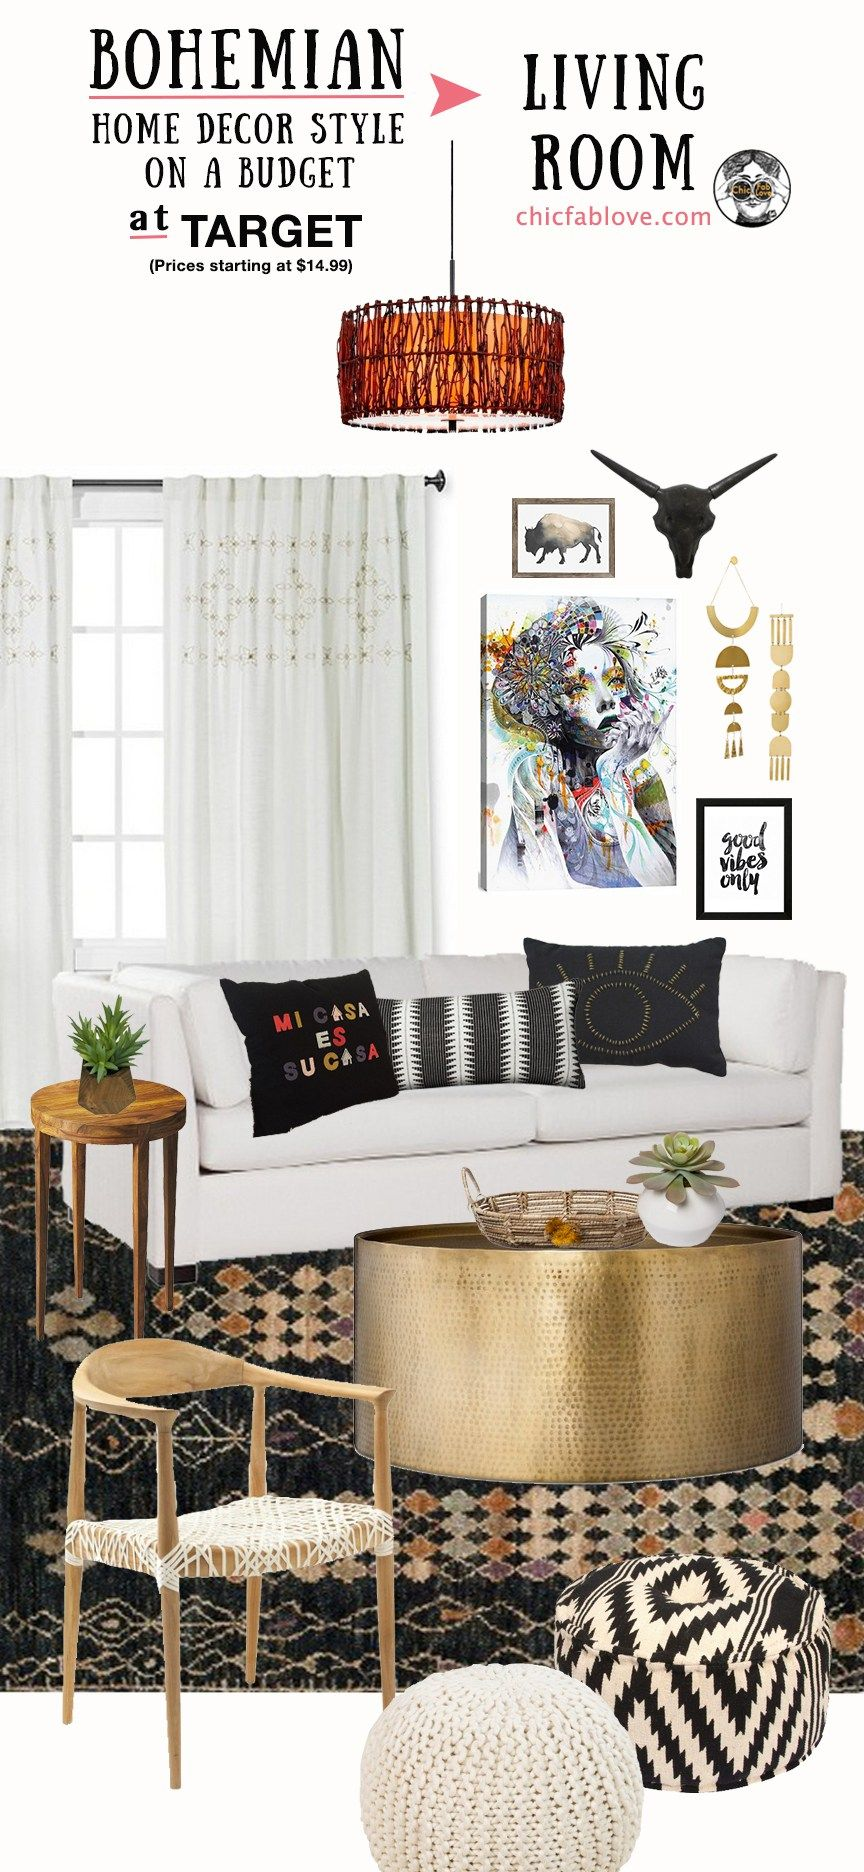 Bohemian Home Decor Style On A Budget At Target Blogger